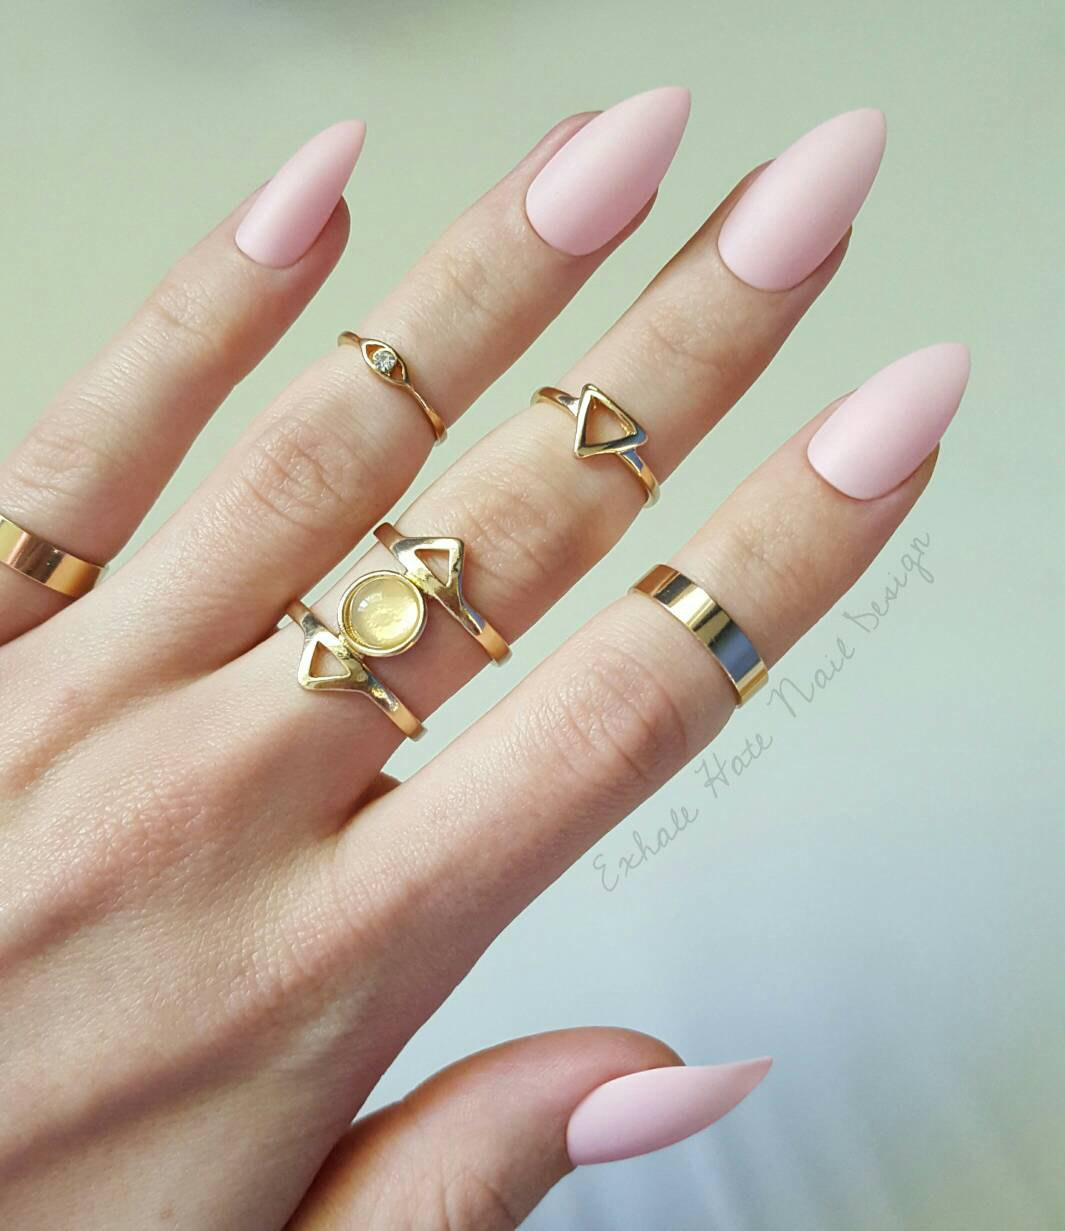 acrylic nails for pale skin photo - 2